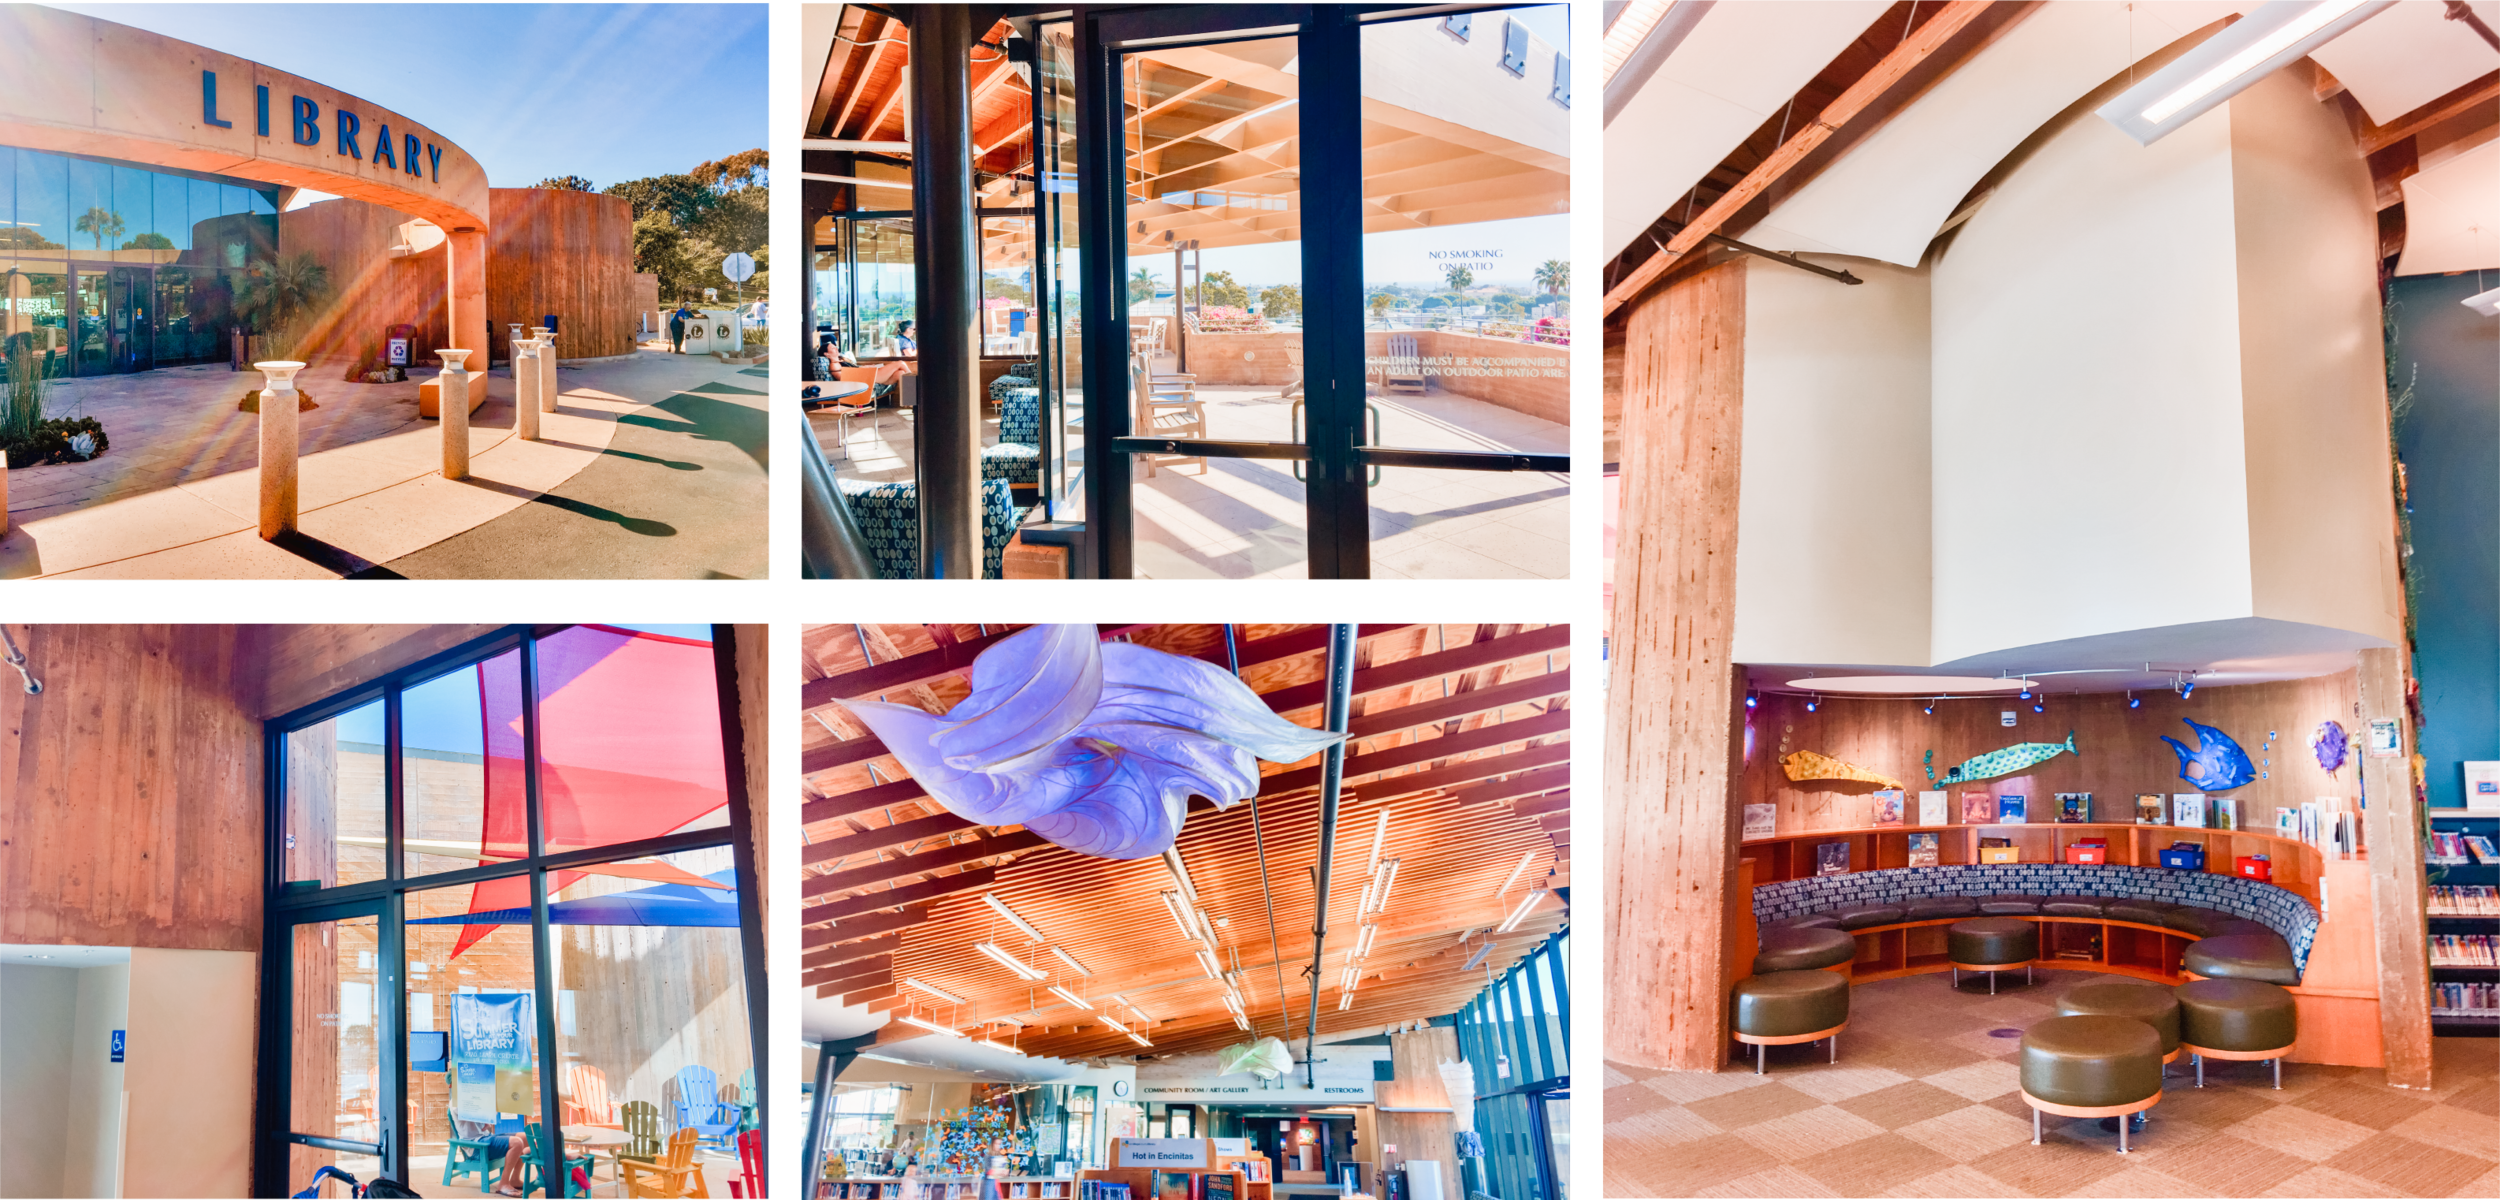 I recently visited the Encinitas public library and WOWZA 🤩. Those light fixtures! And the roof lines! And the lighting! Oh my! What an incredible building by Manuel Oncina Architects. Do you have a favorite library? 📚